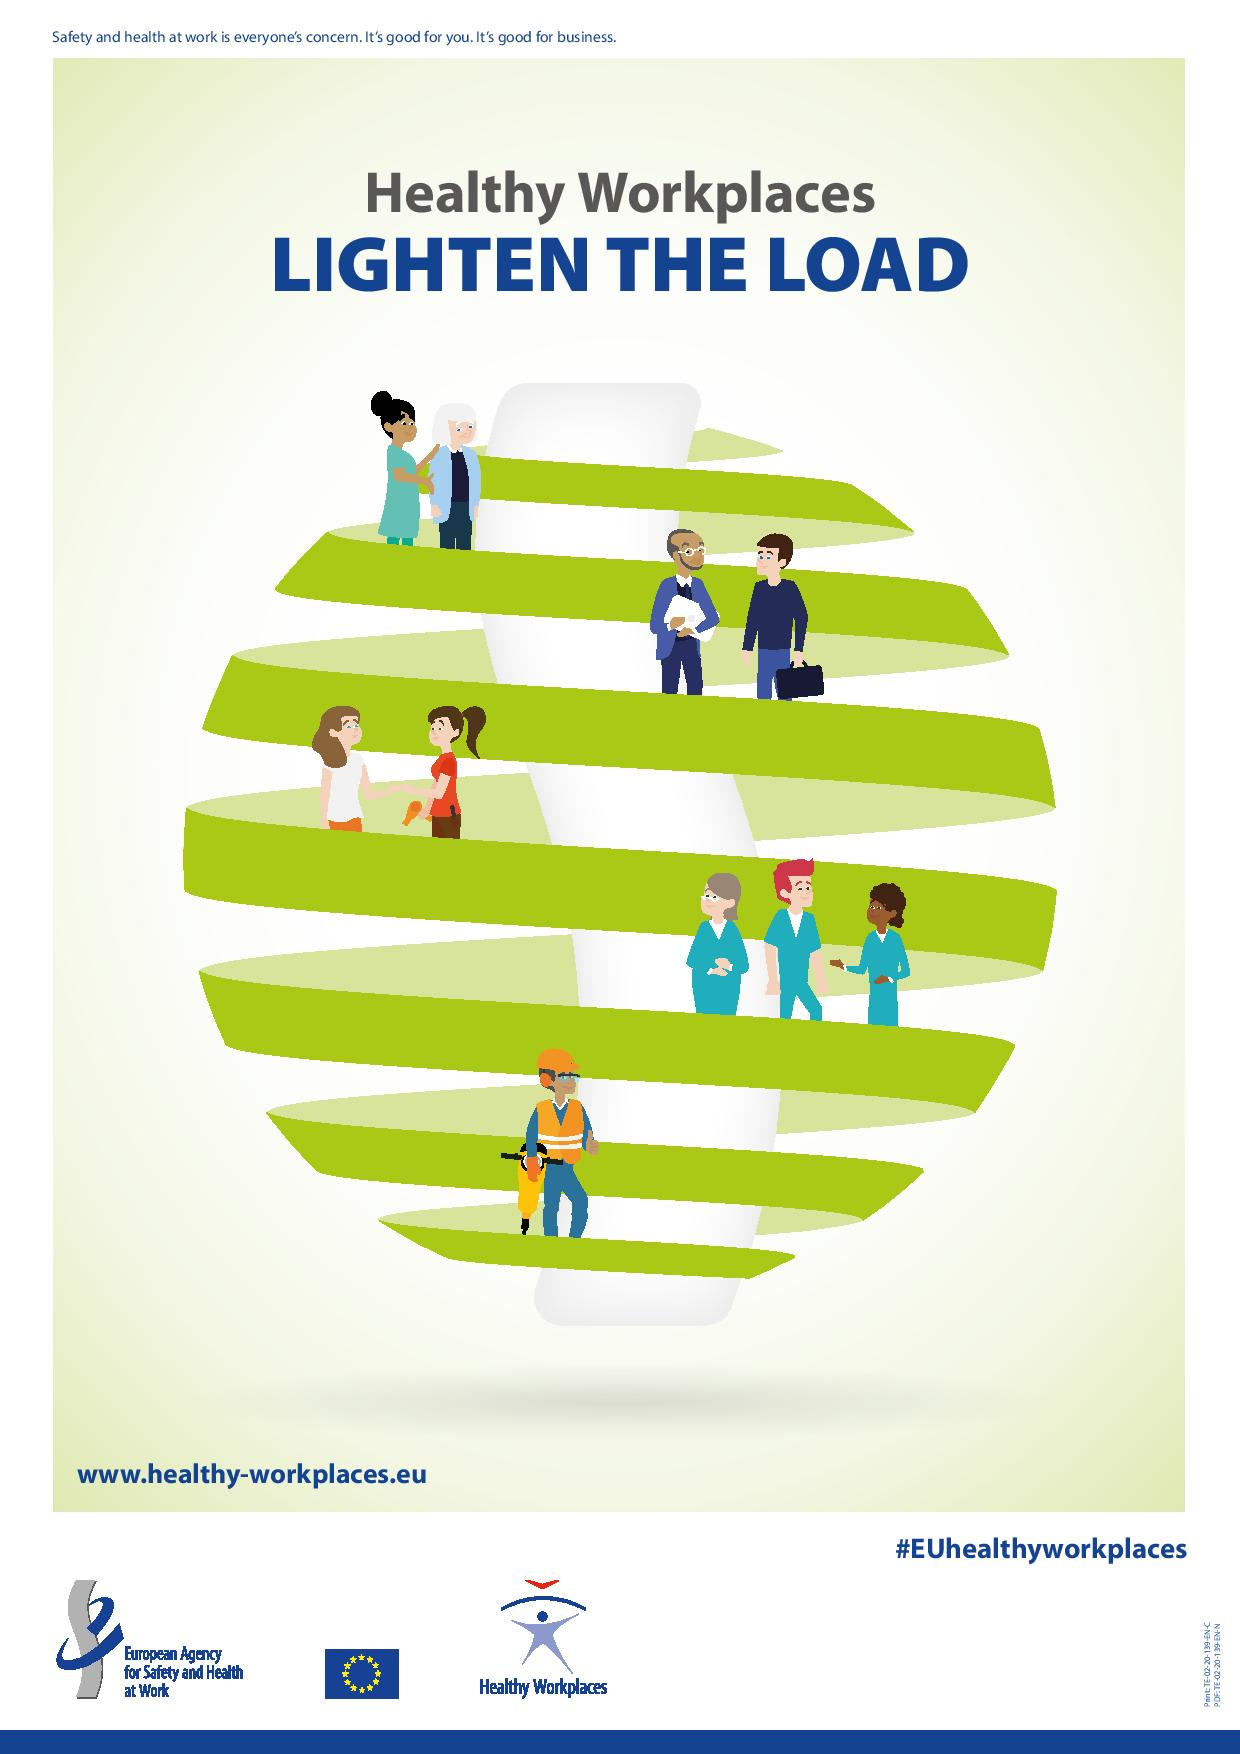 Get involved with European Week for Safety and Health at Work 2020